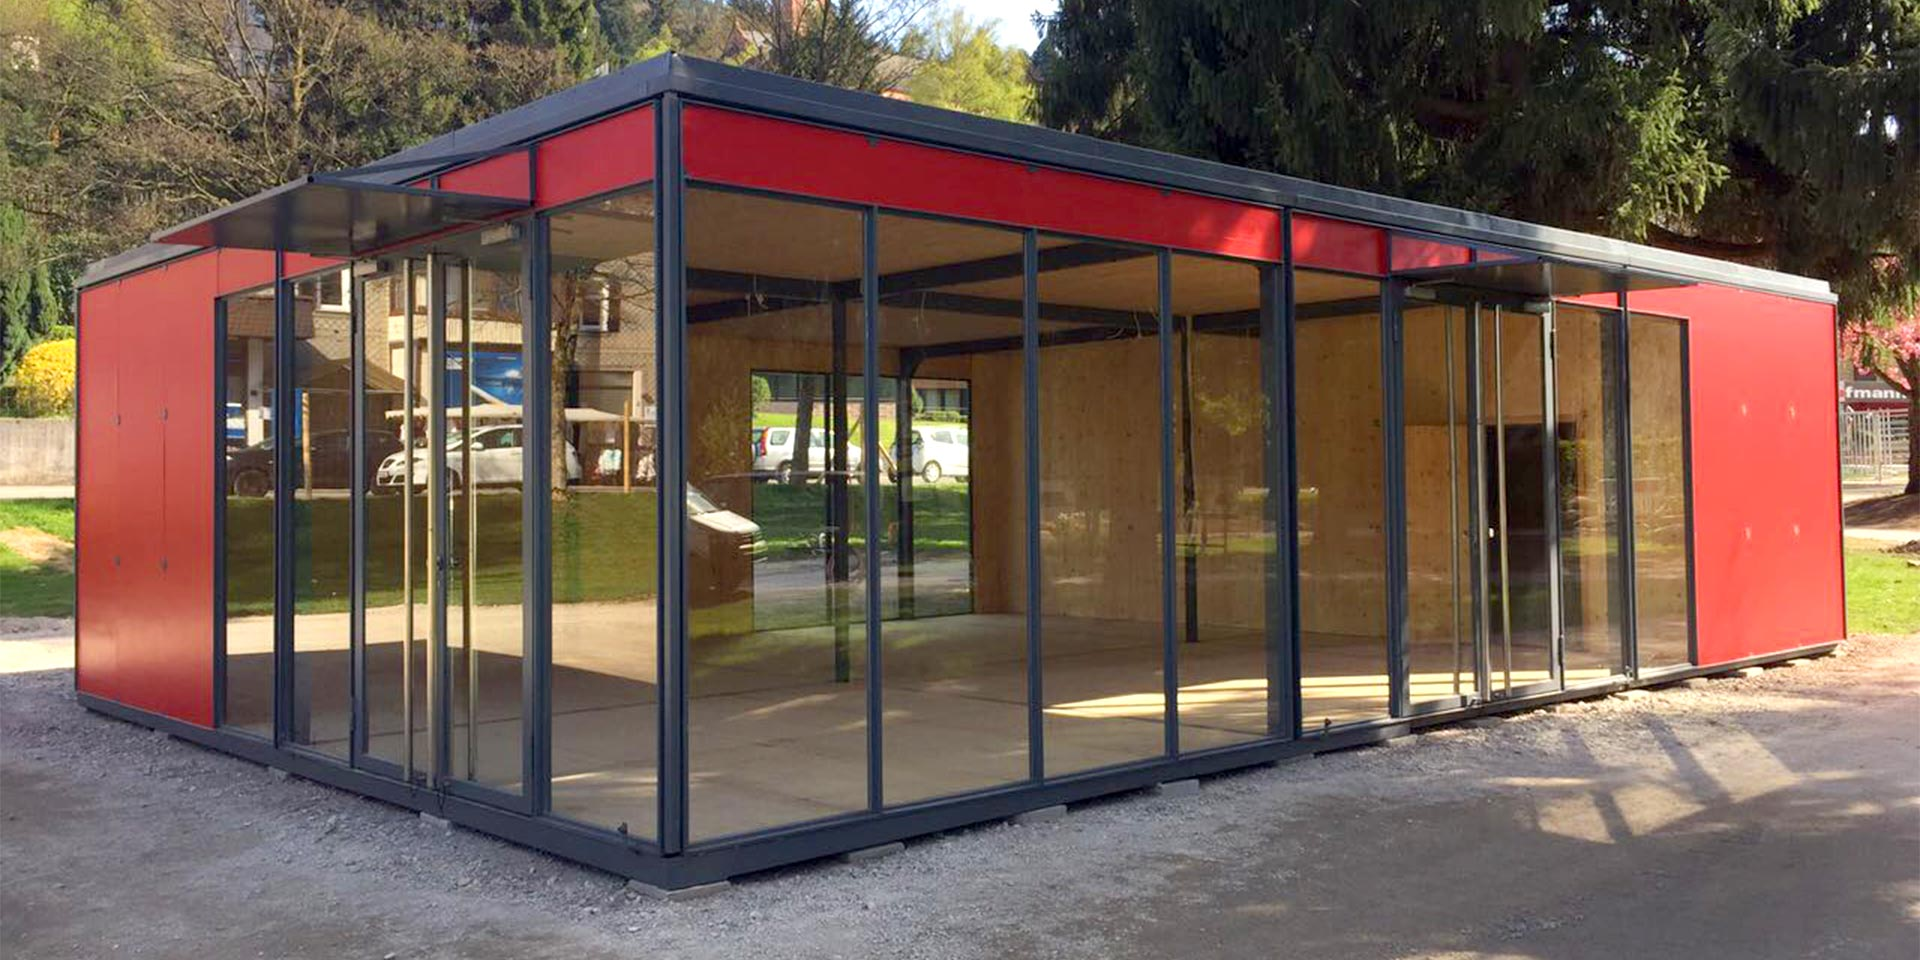 Mobiler Pavillon Outdoor Pavillon - Outdoor Pavillon